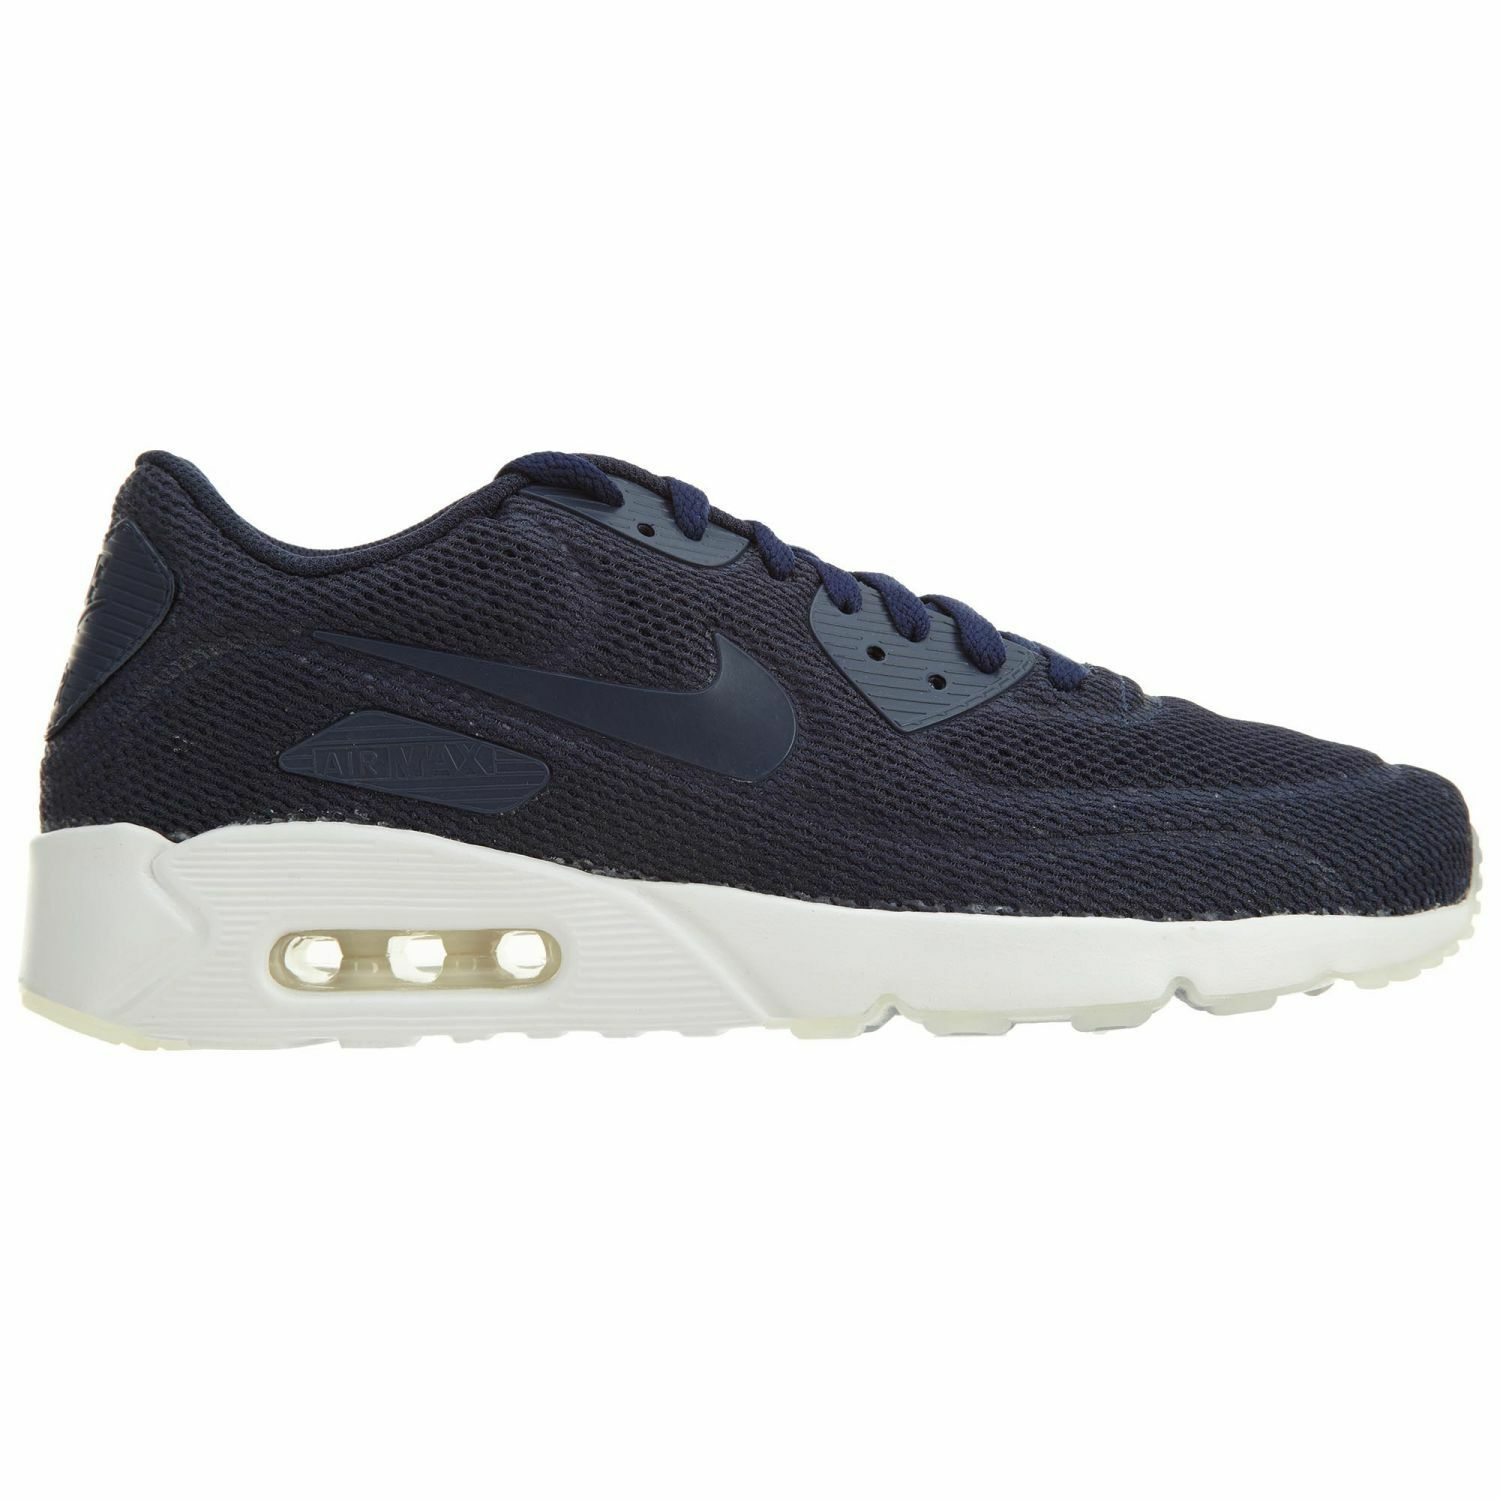 Nike Air Max 90 Ultra 2.0 BR Mens 898010-400 Midnight Navy Running Shoes Size 10